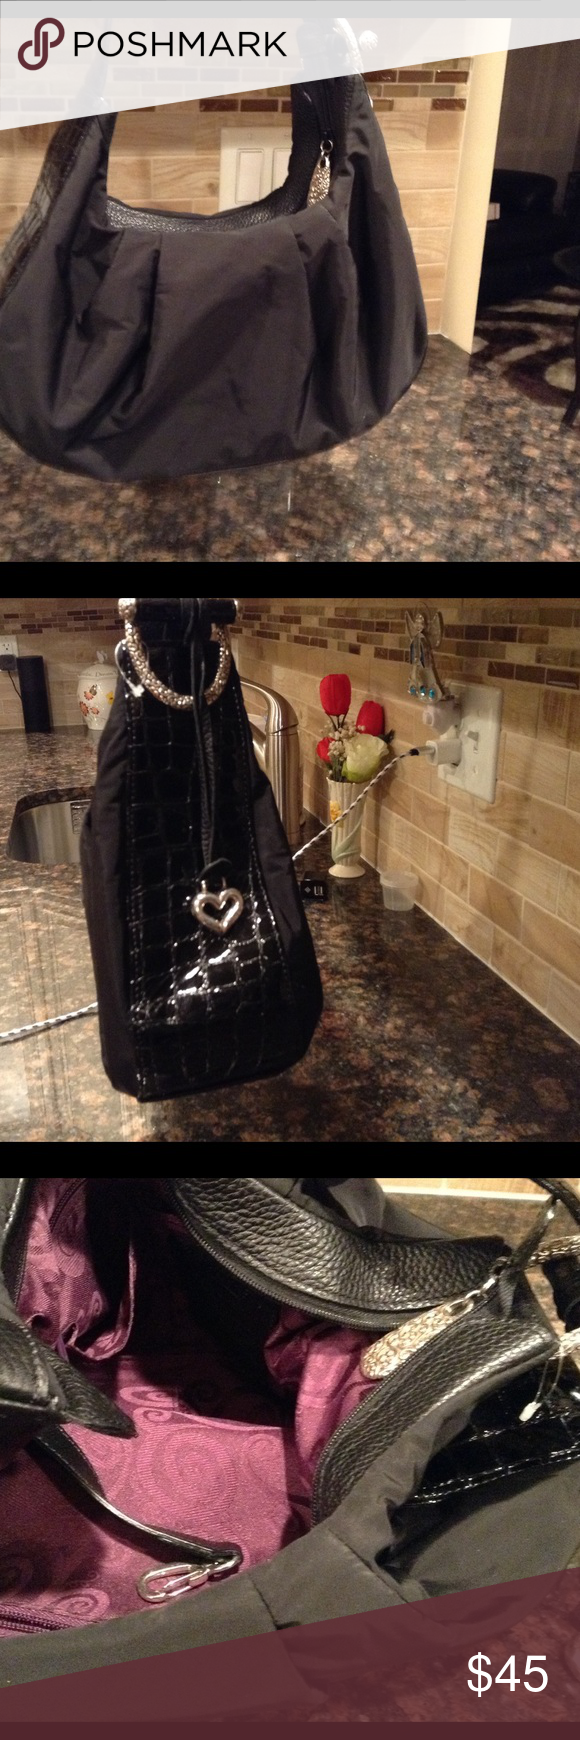 """Brighton bag NWOT Black microfiber with black shiney leather trim with silver accessory trim. 14"""" X 8"""" X 4"""" has a handle drop of 11"""" really nice dressy bag can be used everyday lots of room. Brighton Bags Shoulder Bags"""